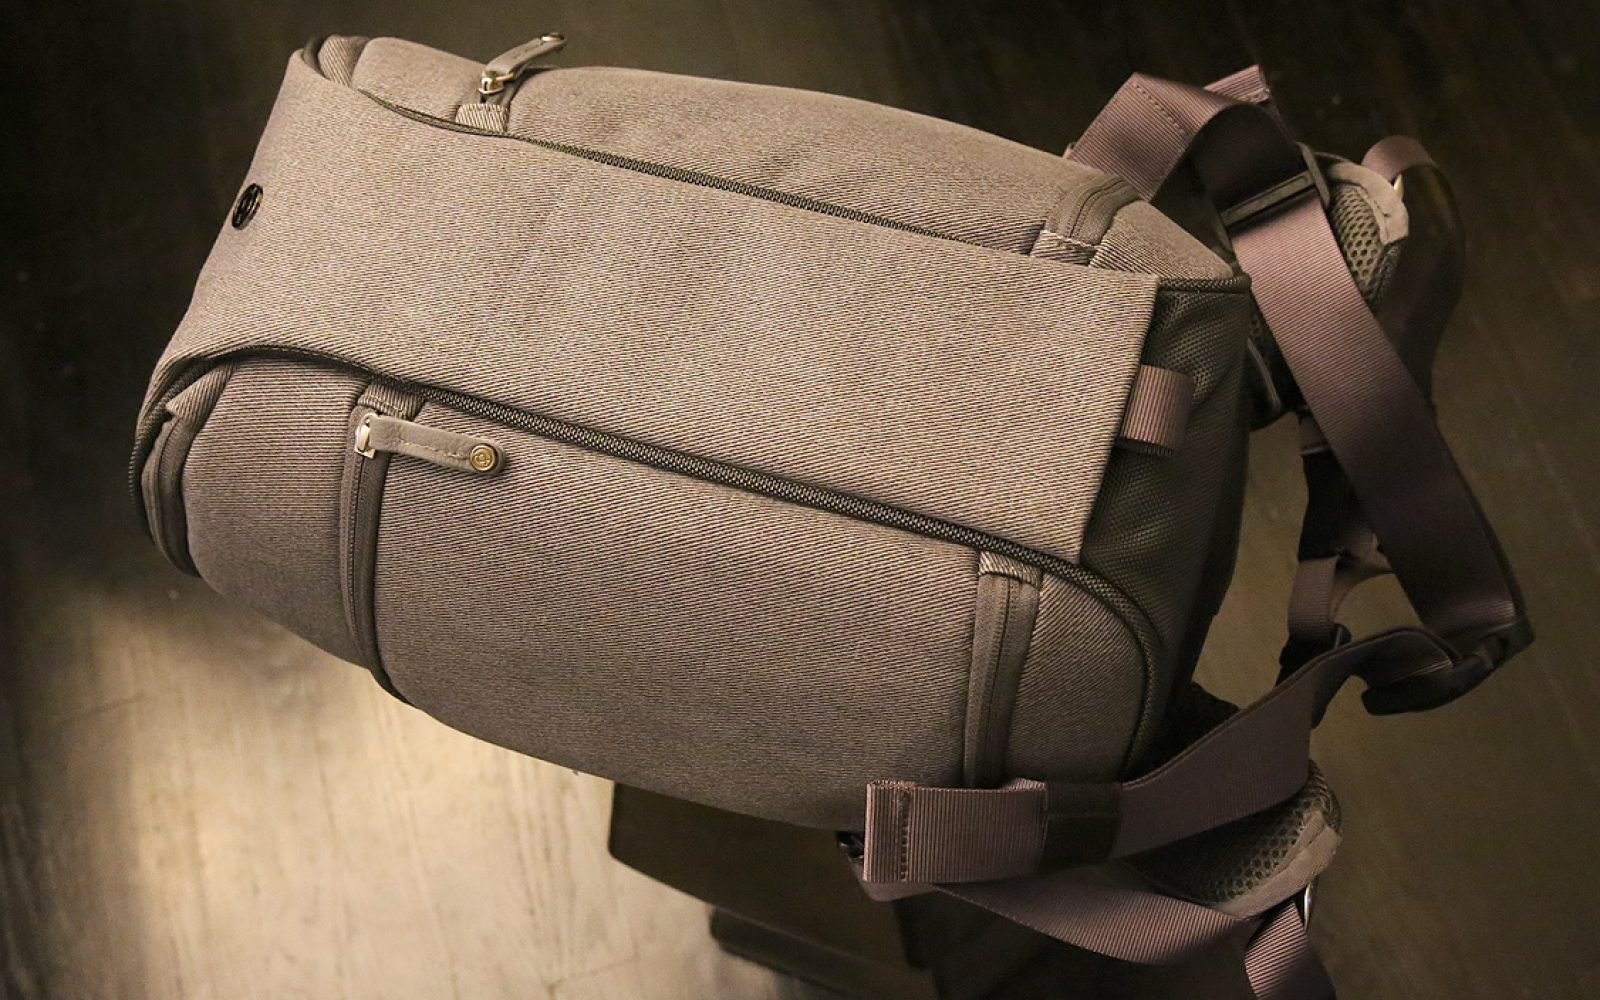 6d52143c9f62 Review  Booq s Slimpack gives DSLR-toting MacBook users another all-in-one  bag option